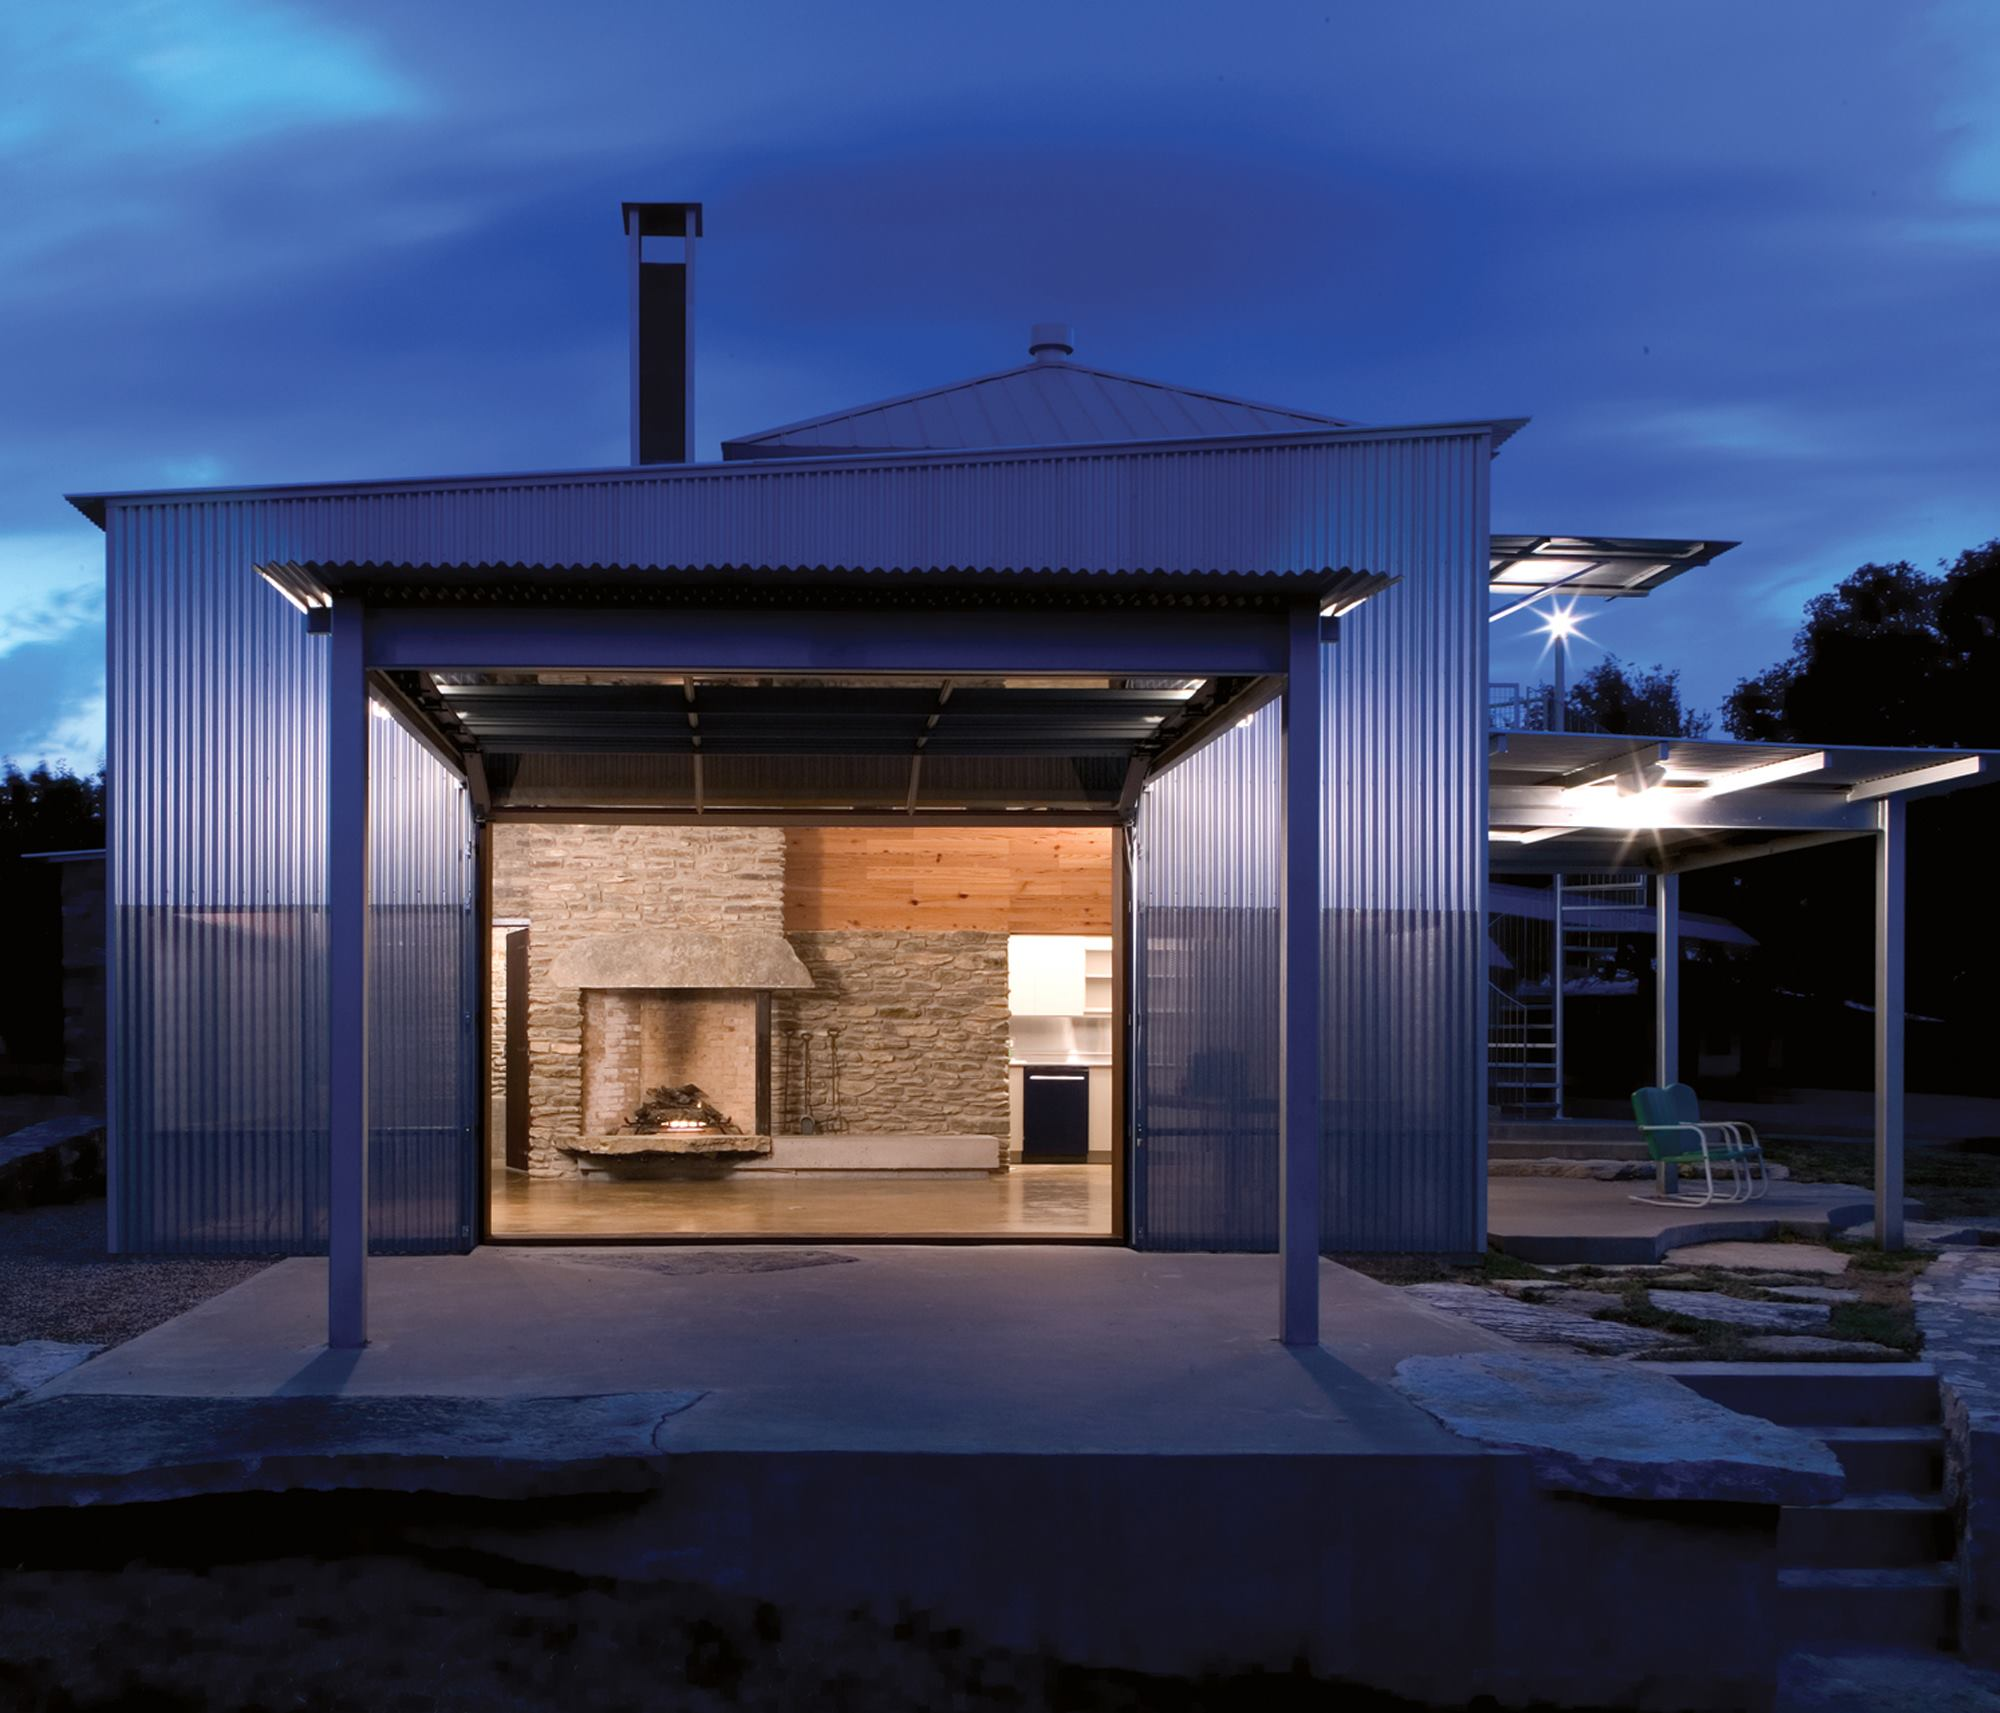 Guesthouse and party barn hico texas residential for Residential architect design awards